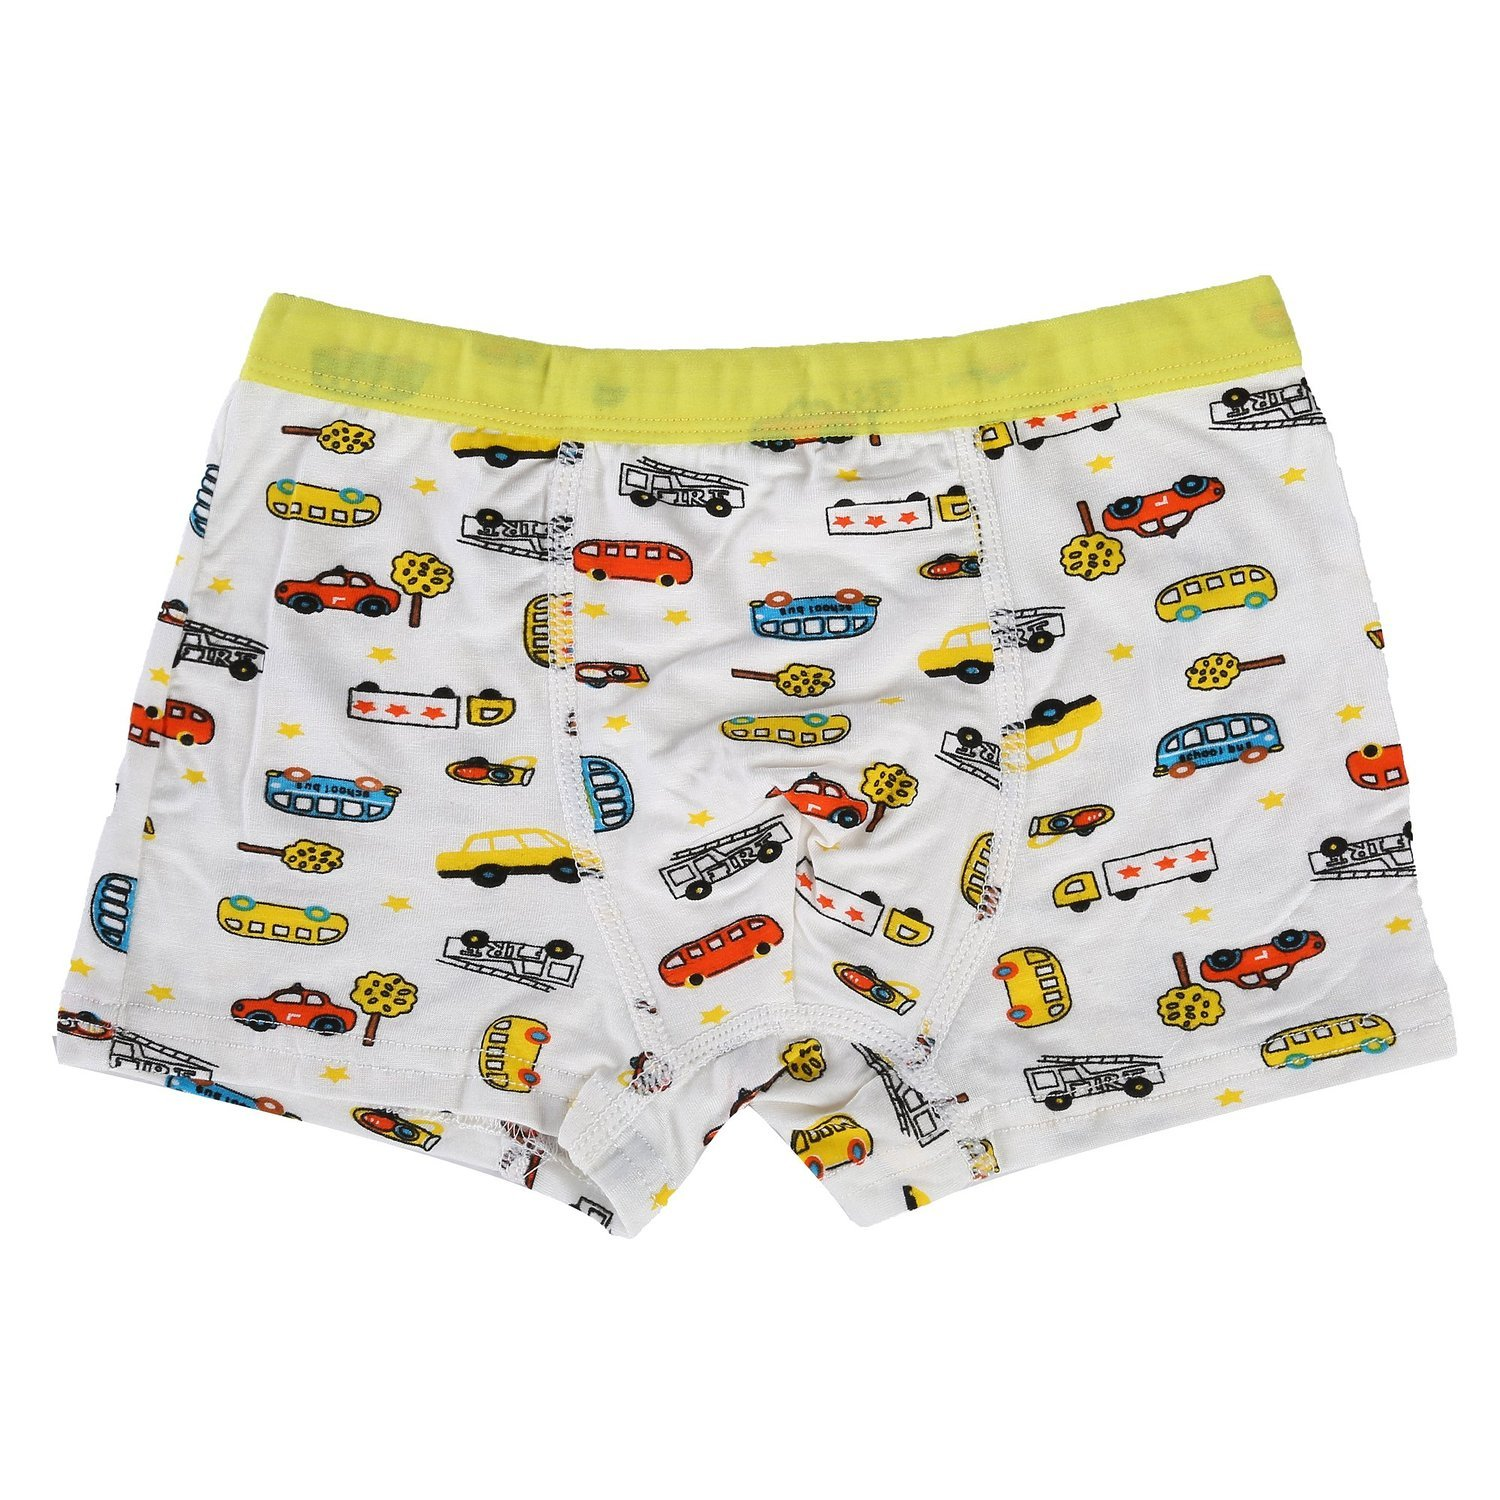 Bala Bala Boy's Boxer Brief Multicolor Underwear (Pack Of 5) (XL/Car Underwear, (Pack Of 5)/Car Underwear) by Bala Bala (Image #6)